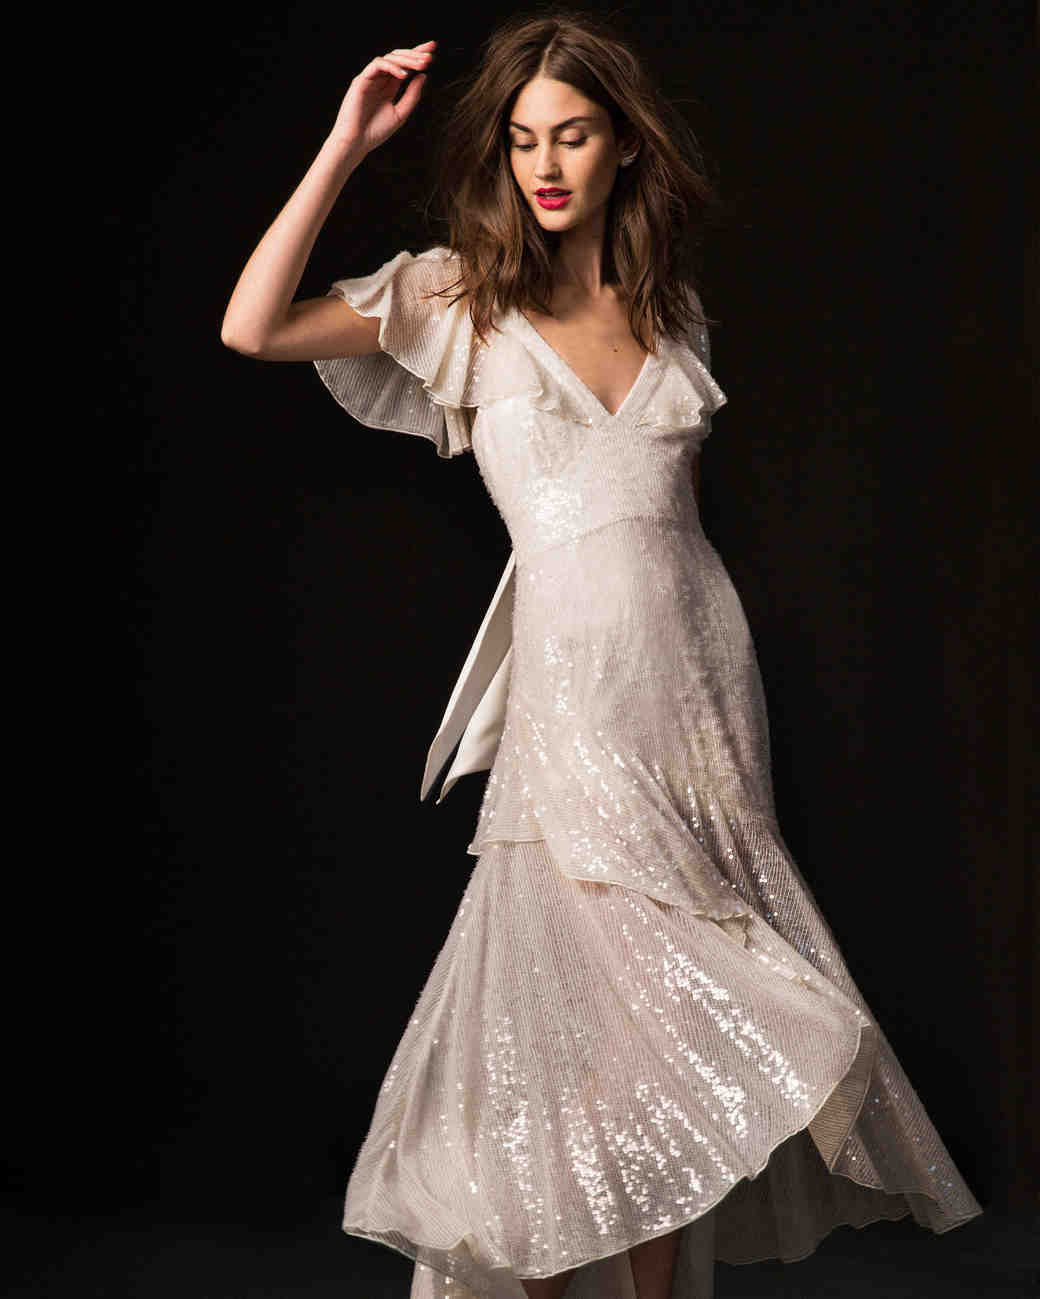 temperley fall 2019 v-neck high-low dress wedding dress